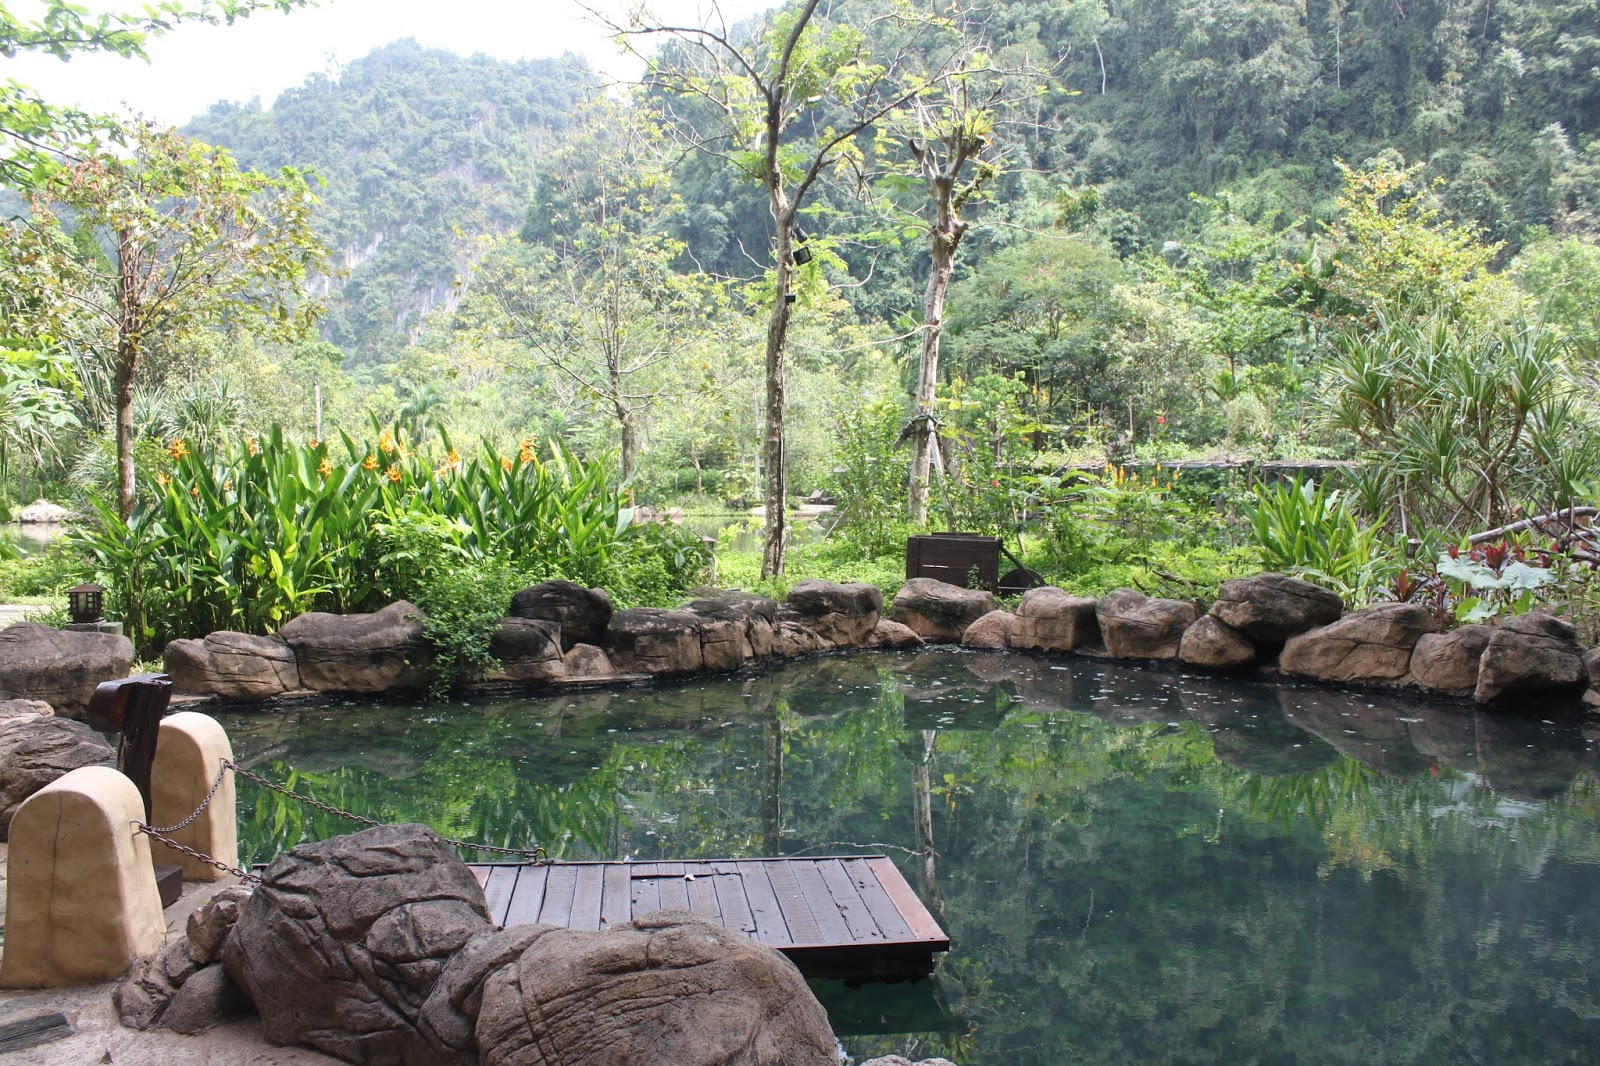 Kee hua chee live banjaran hotsprings retreat in perak is malaysia 39 s most exclusive exotic for Outdoor swimming pool near slough